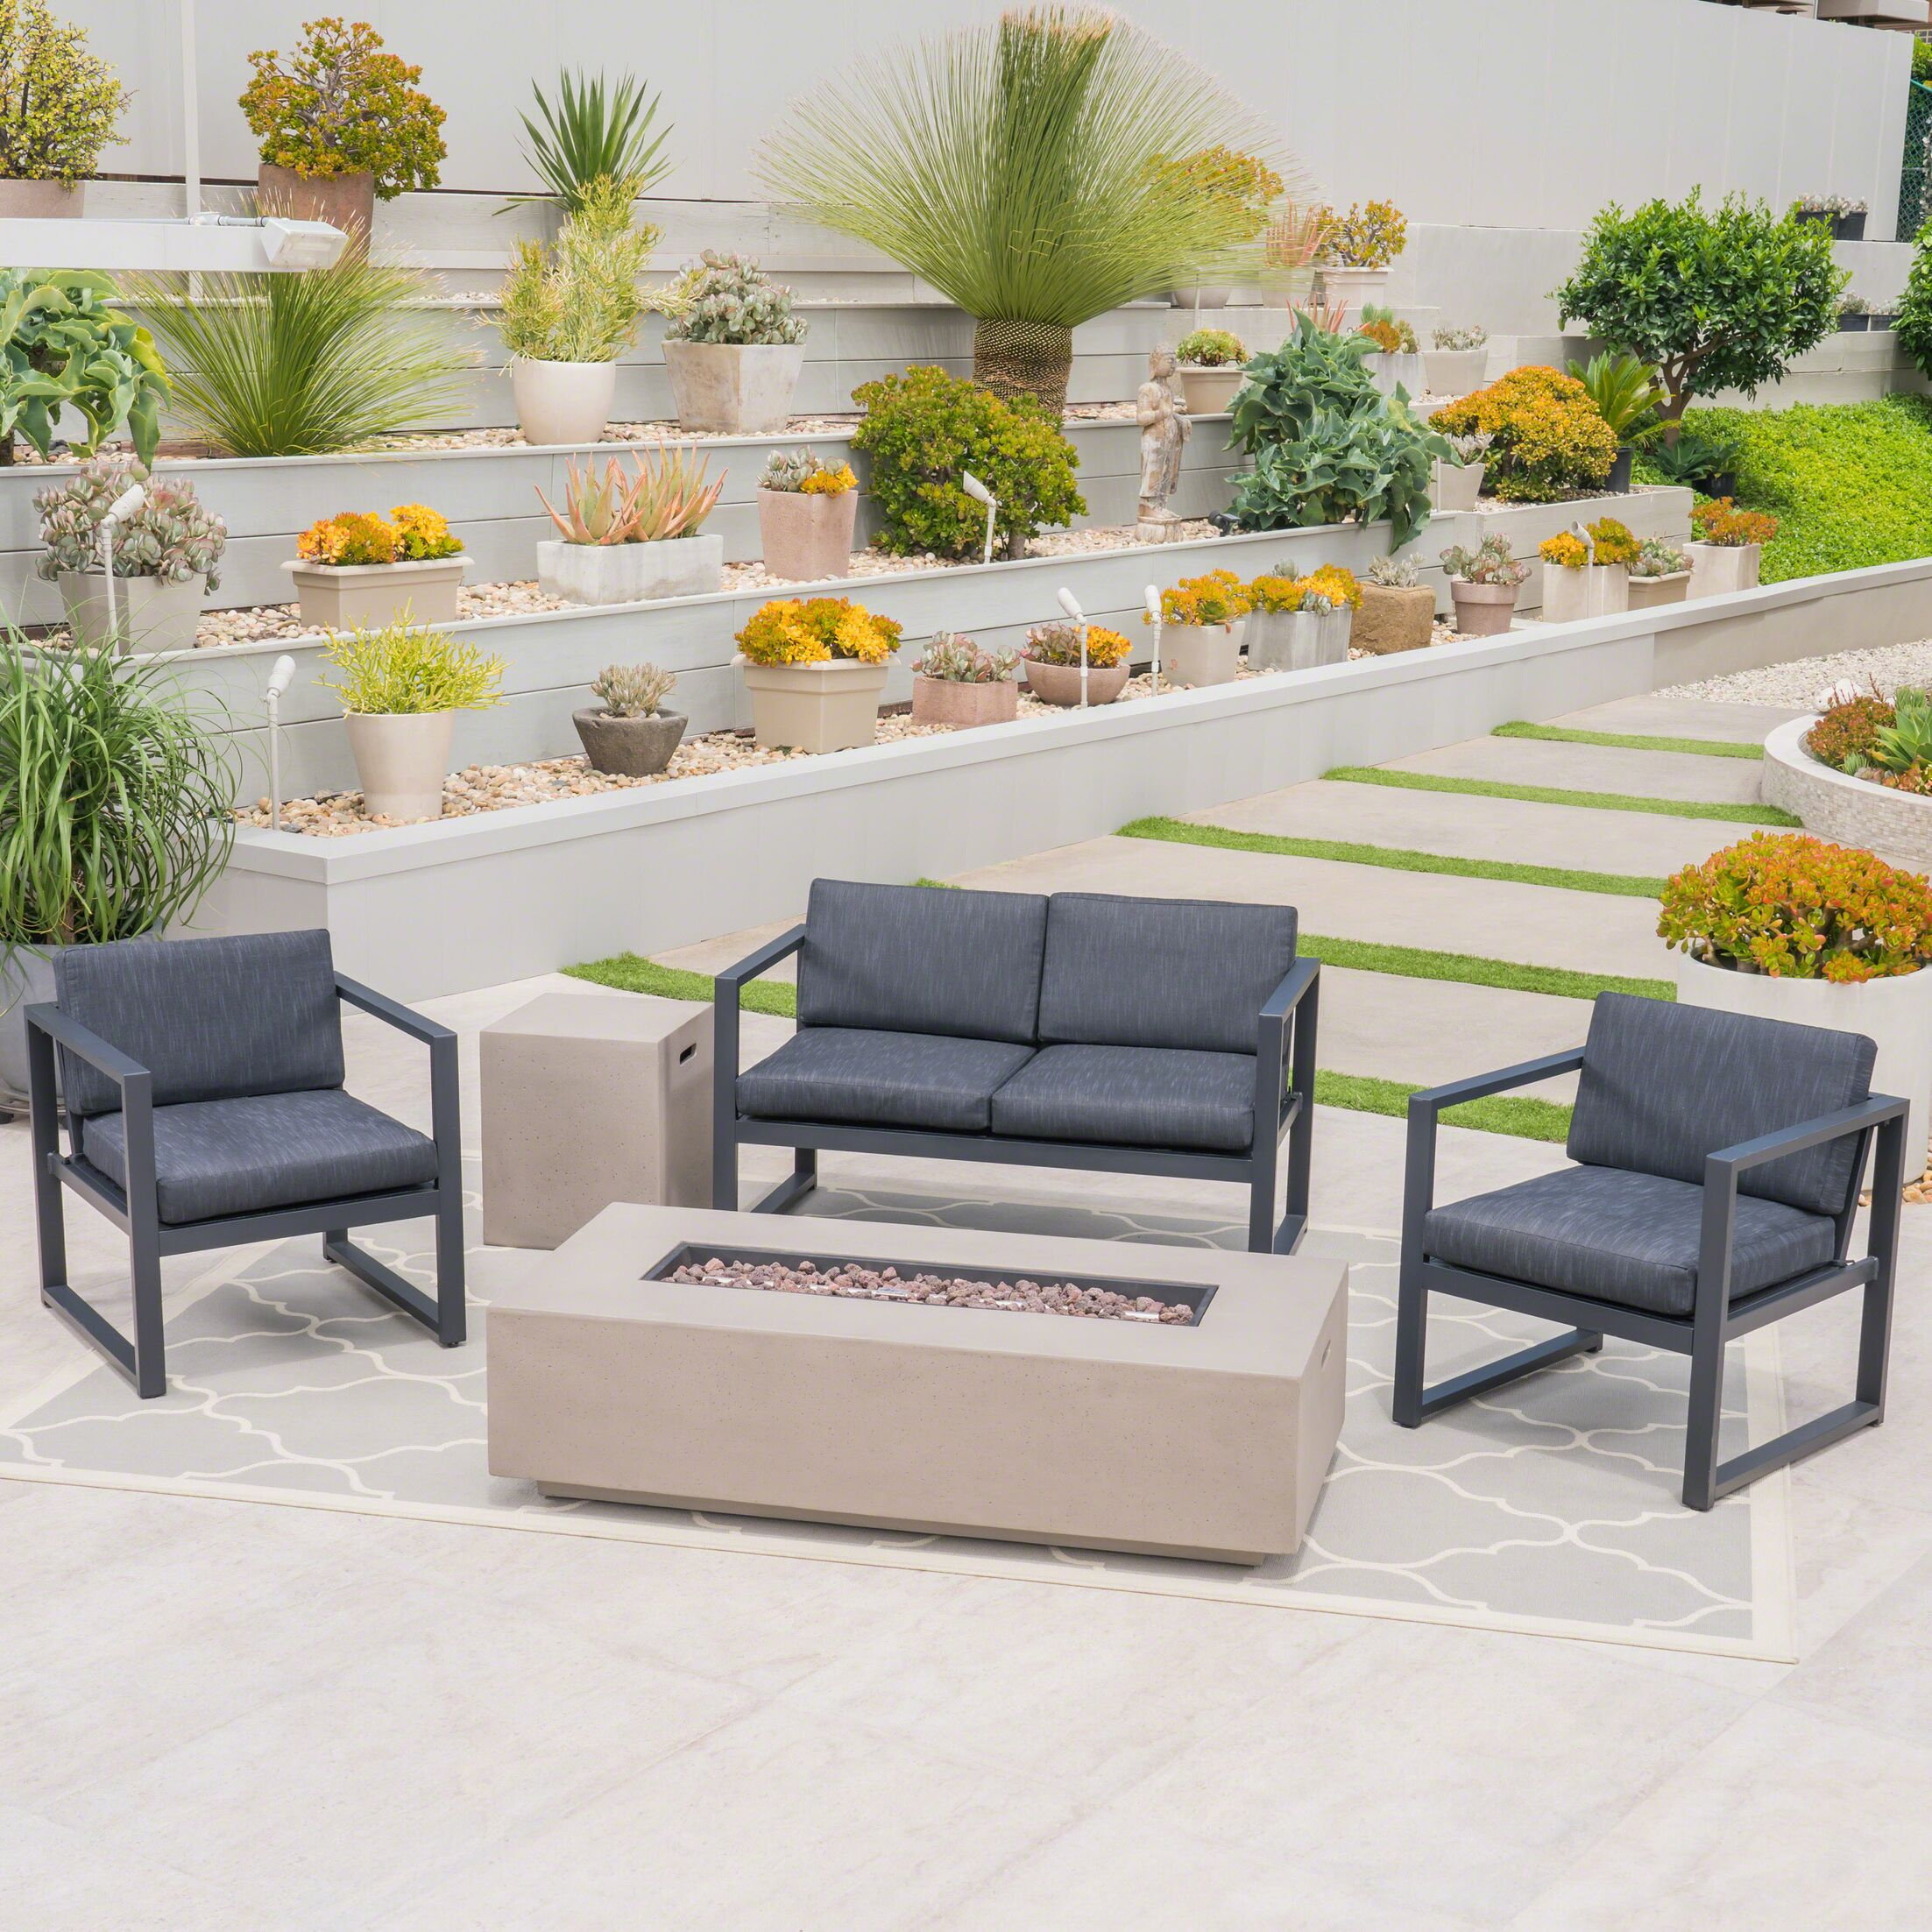 Frankfort Outdoor 5 Piece Sofa Seating Group with Cushions Frame Finish: Brown/Dark Gray